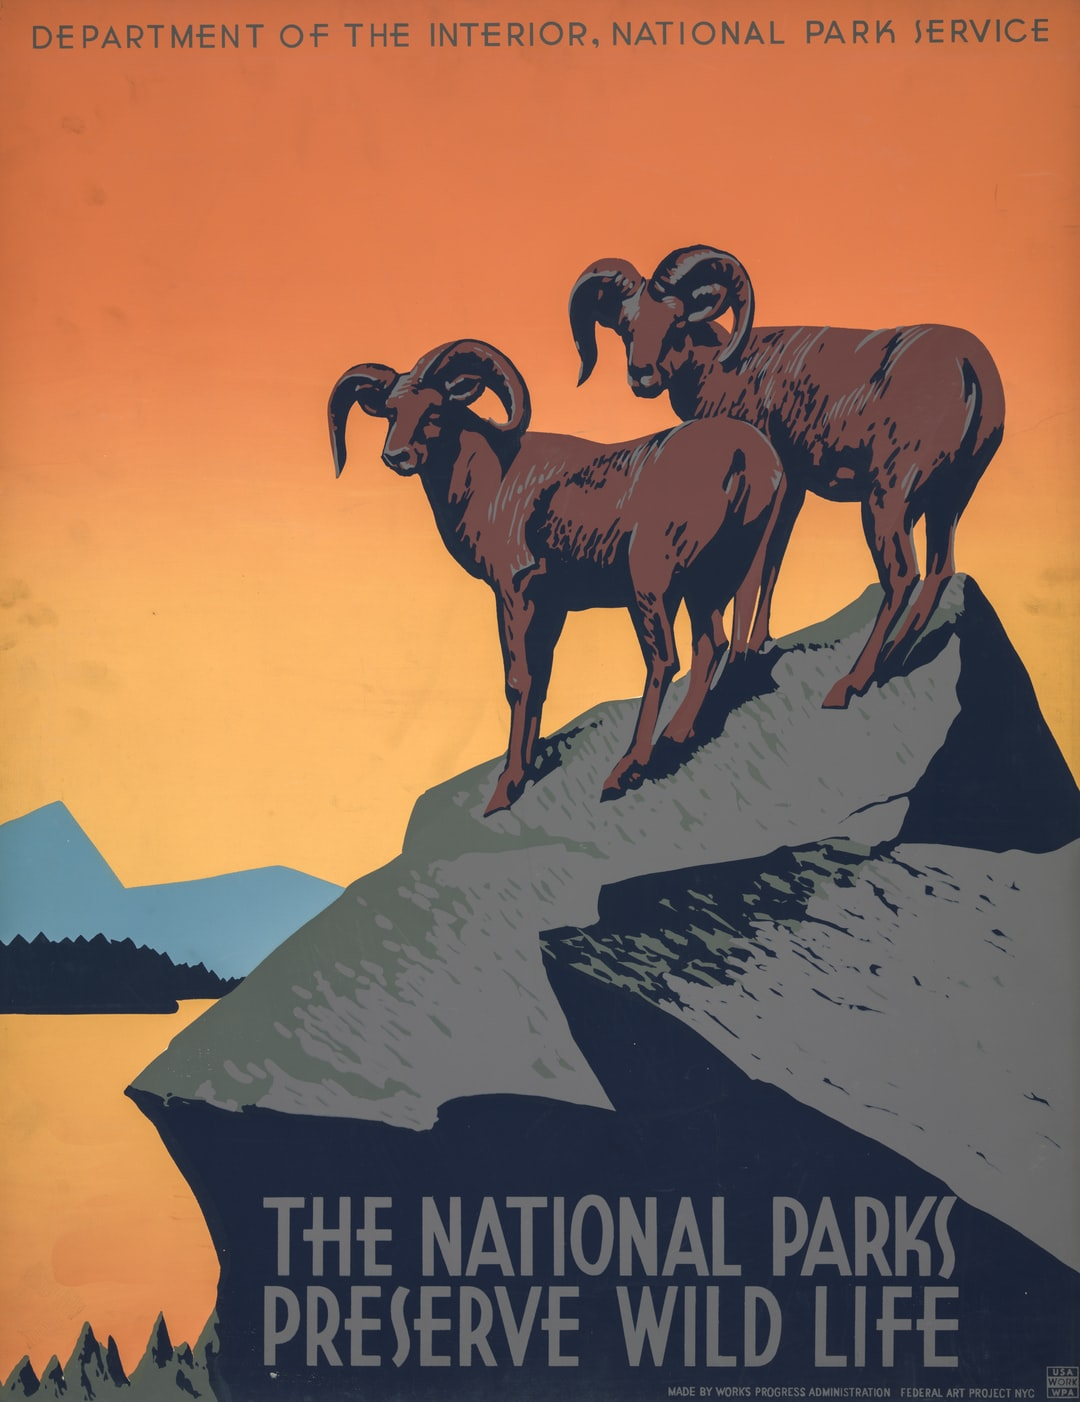 The National Parks Preserve Wild Life. Poster from the NYC: Works Progress Administration, Federal Art Project, [between 1936 and 1939]. From the Work Projects Administration Poster Collection. Library of Congress Prints & Photographs Division.  https://www.loc.gov/item/98518597/